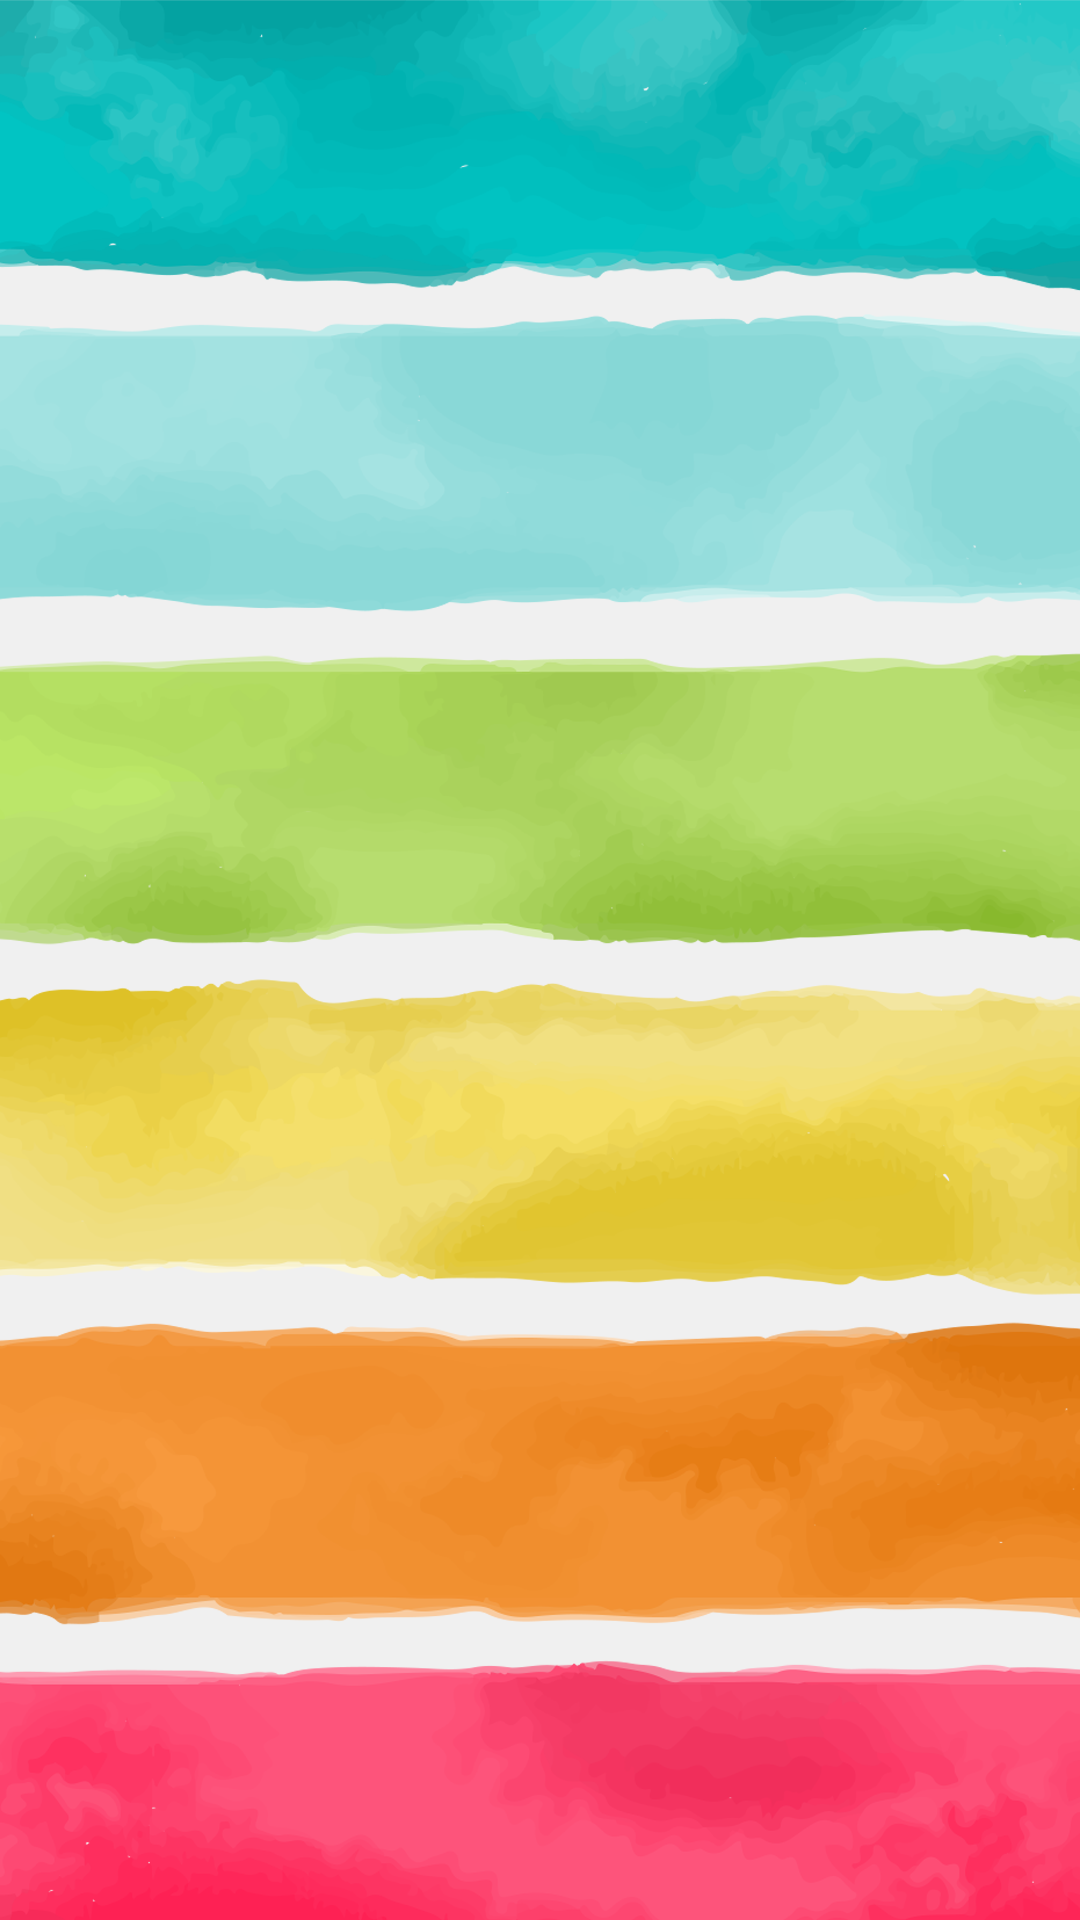 Ultra HD Water Colors Wallpaper For Your Mobile Phone ...0276